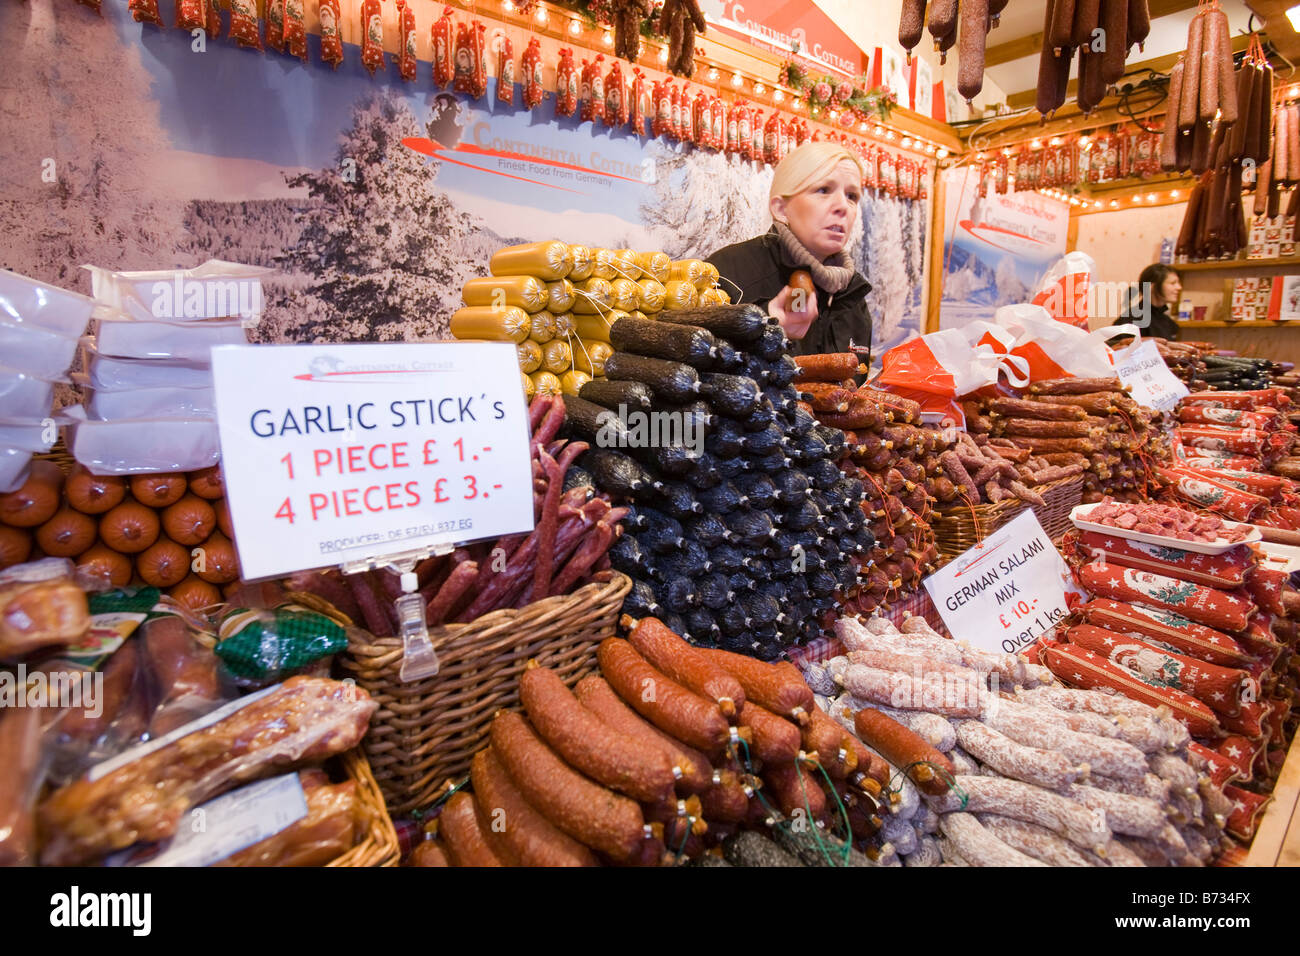 German sausages on a stall at the Christmas market outside Manchester Town Hall in Manchester UK - Stock Image